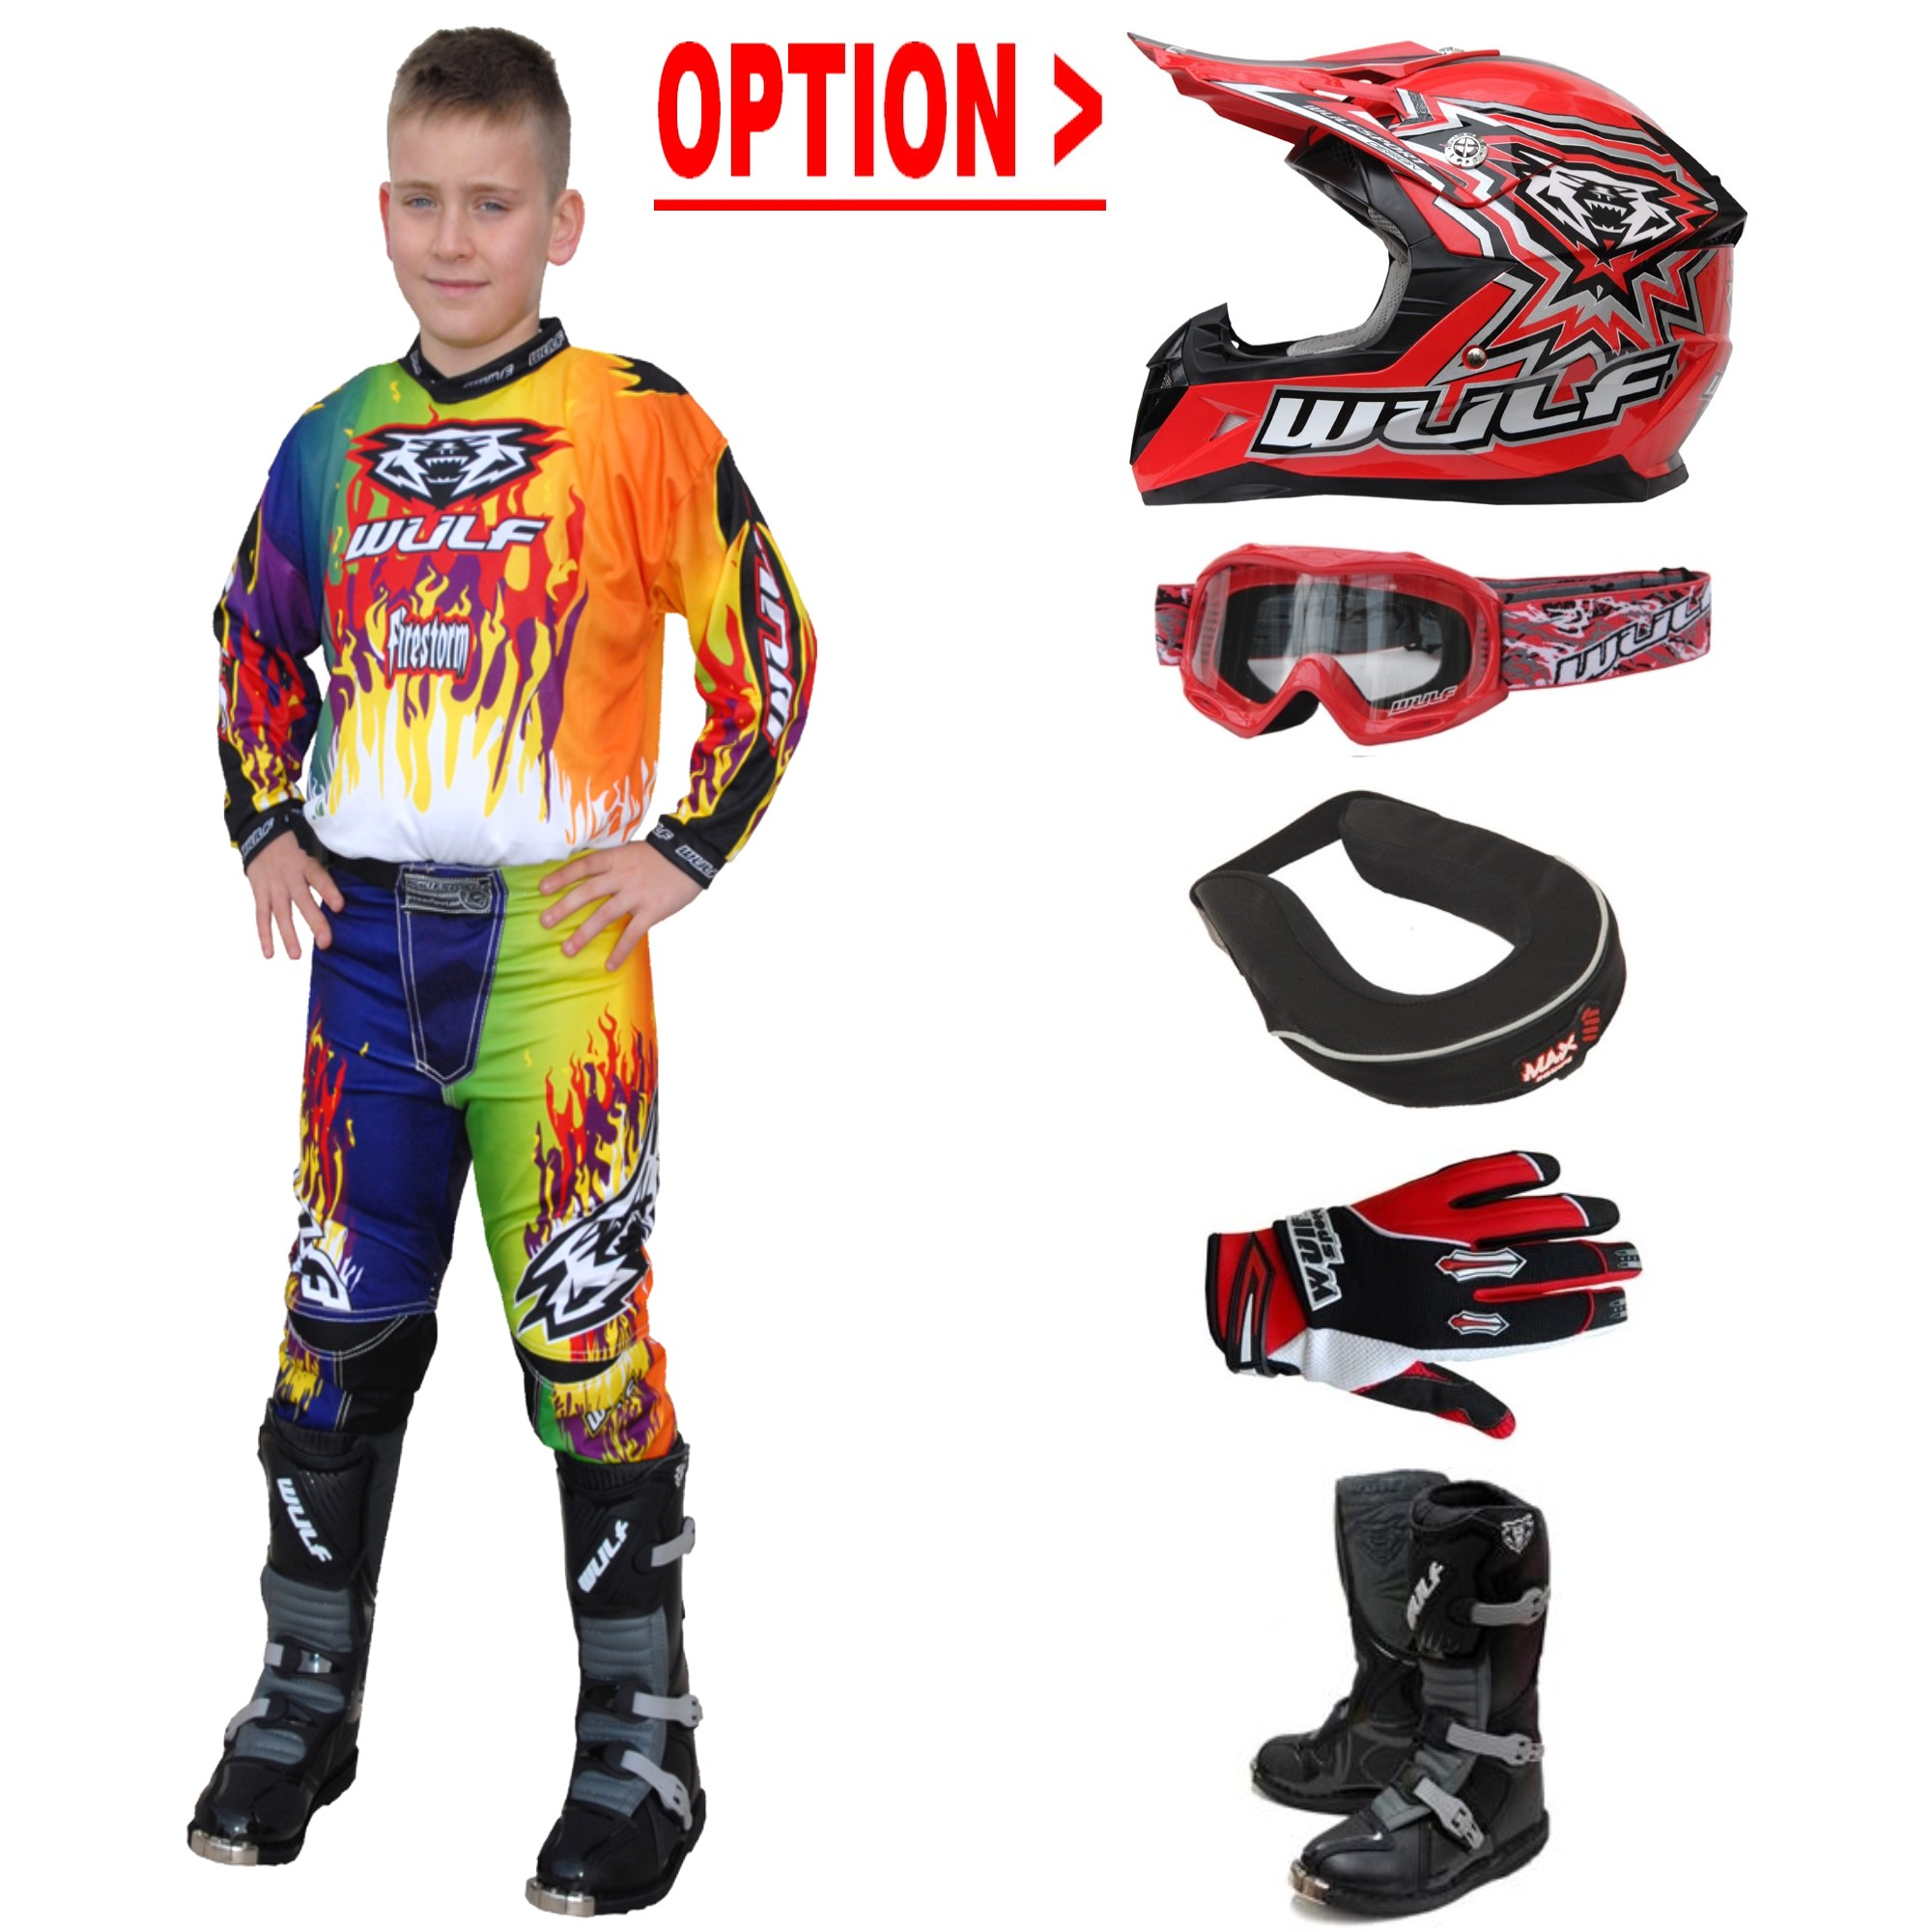 TENUE A OPTIONS ENFANT WULFSPORT STORM MULTI.R 4 à 14a T20 à 28